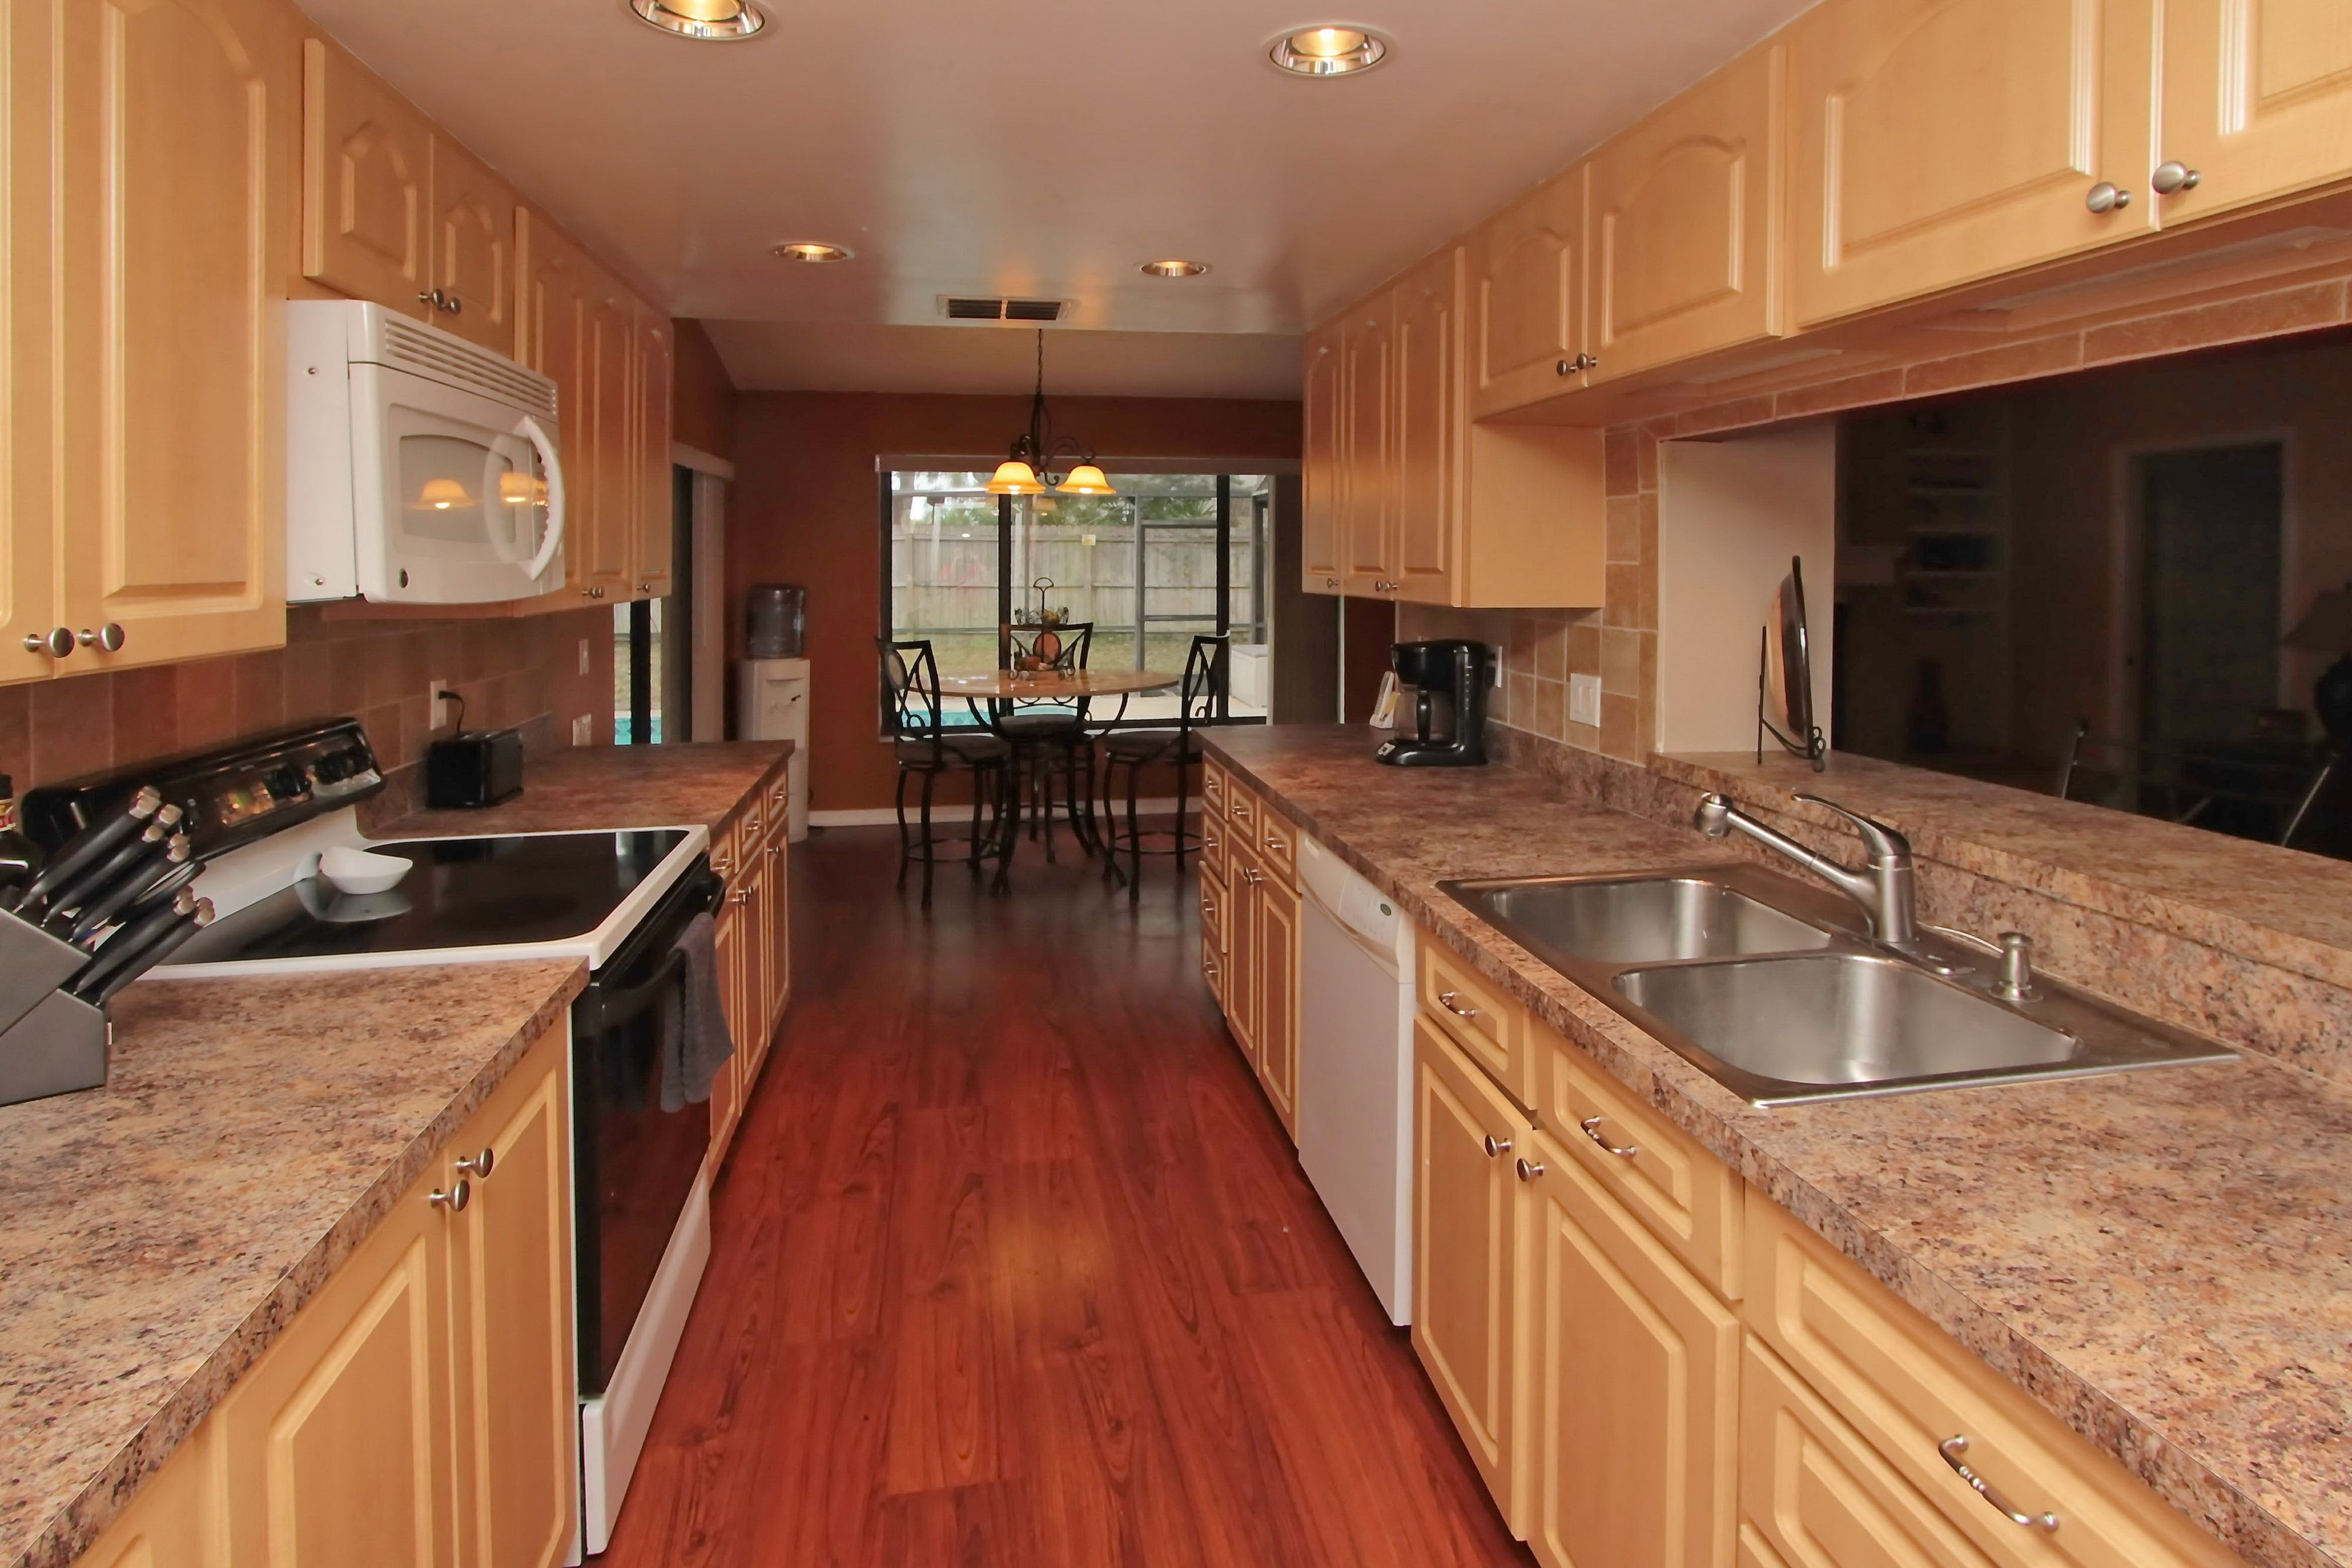 This kitchen is from one of our homes for sale in Safety